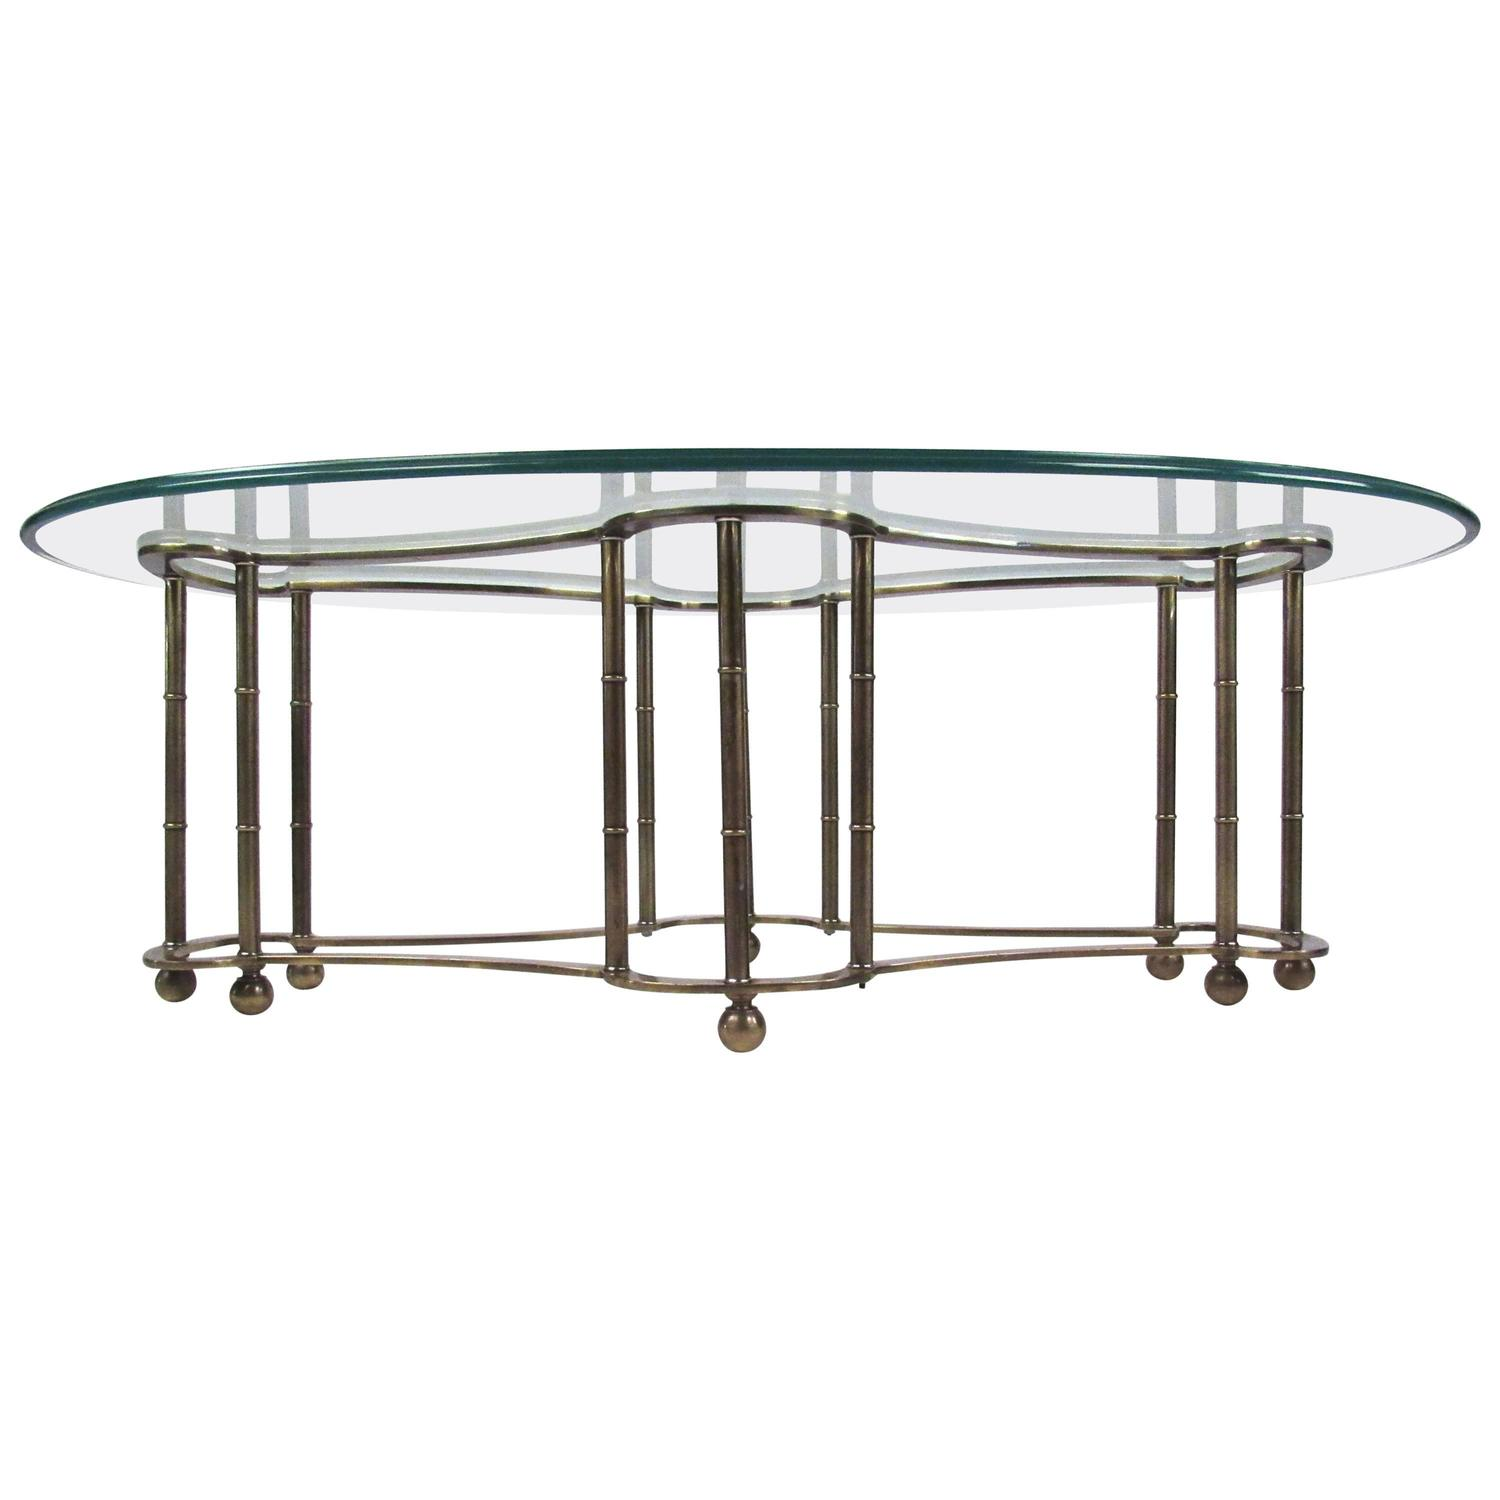 Glass and Brass Coffee Table by Mastercraft For Sale at 1stdibs